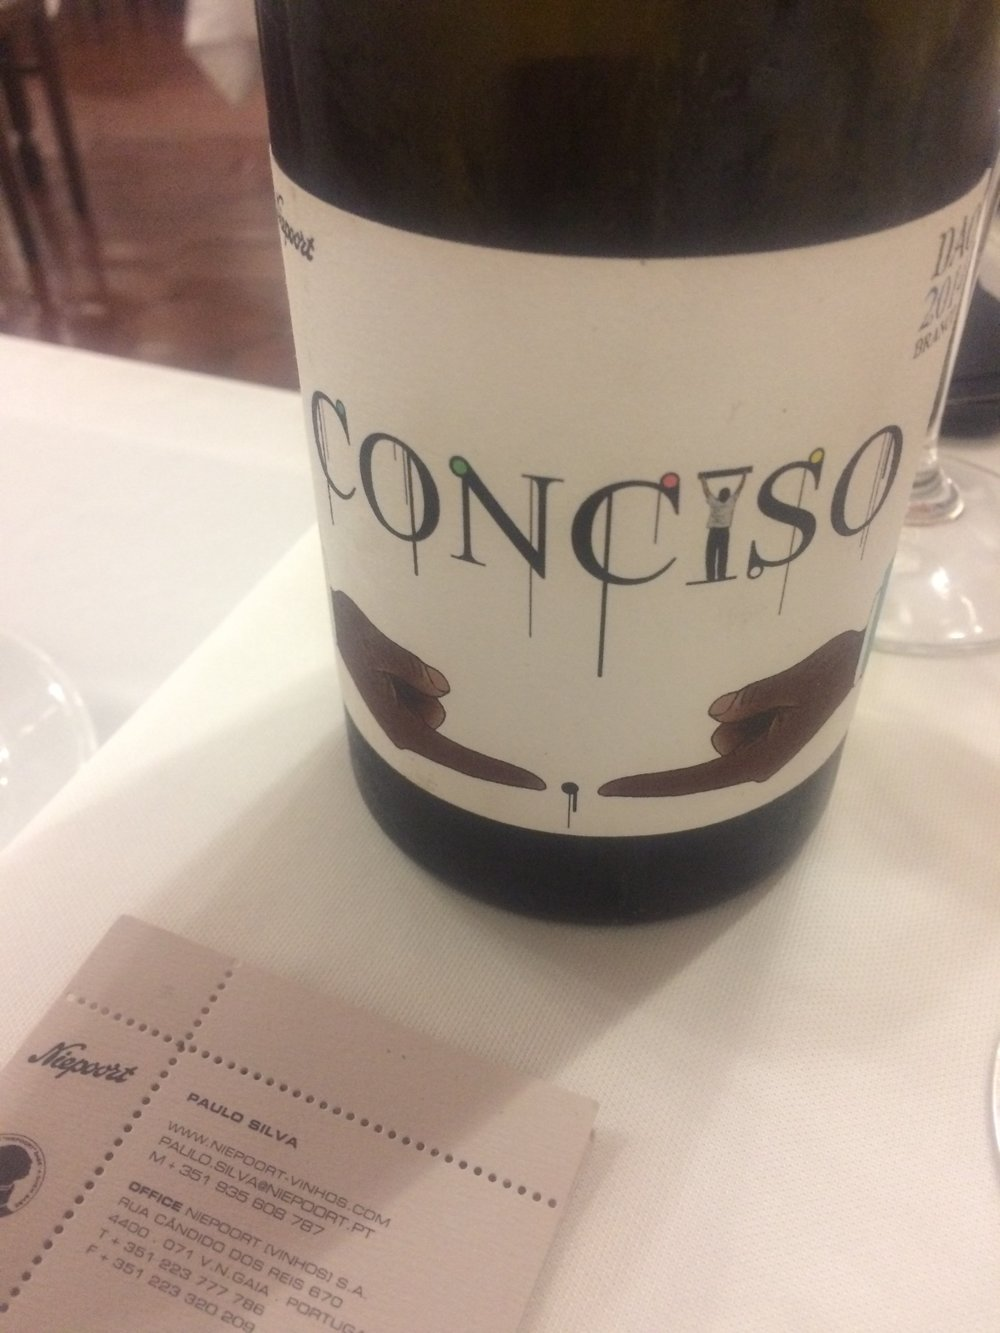 Conciso. Niepoort Vinhos. Christopher Sealy